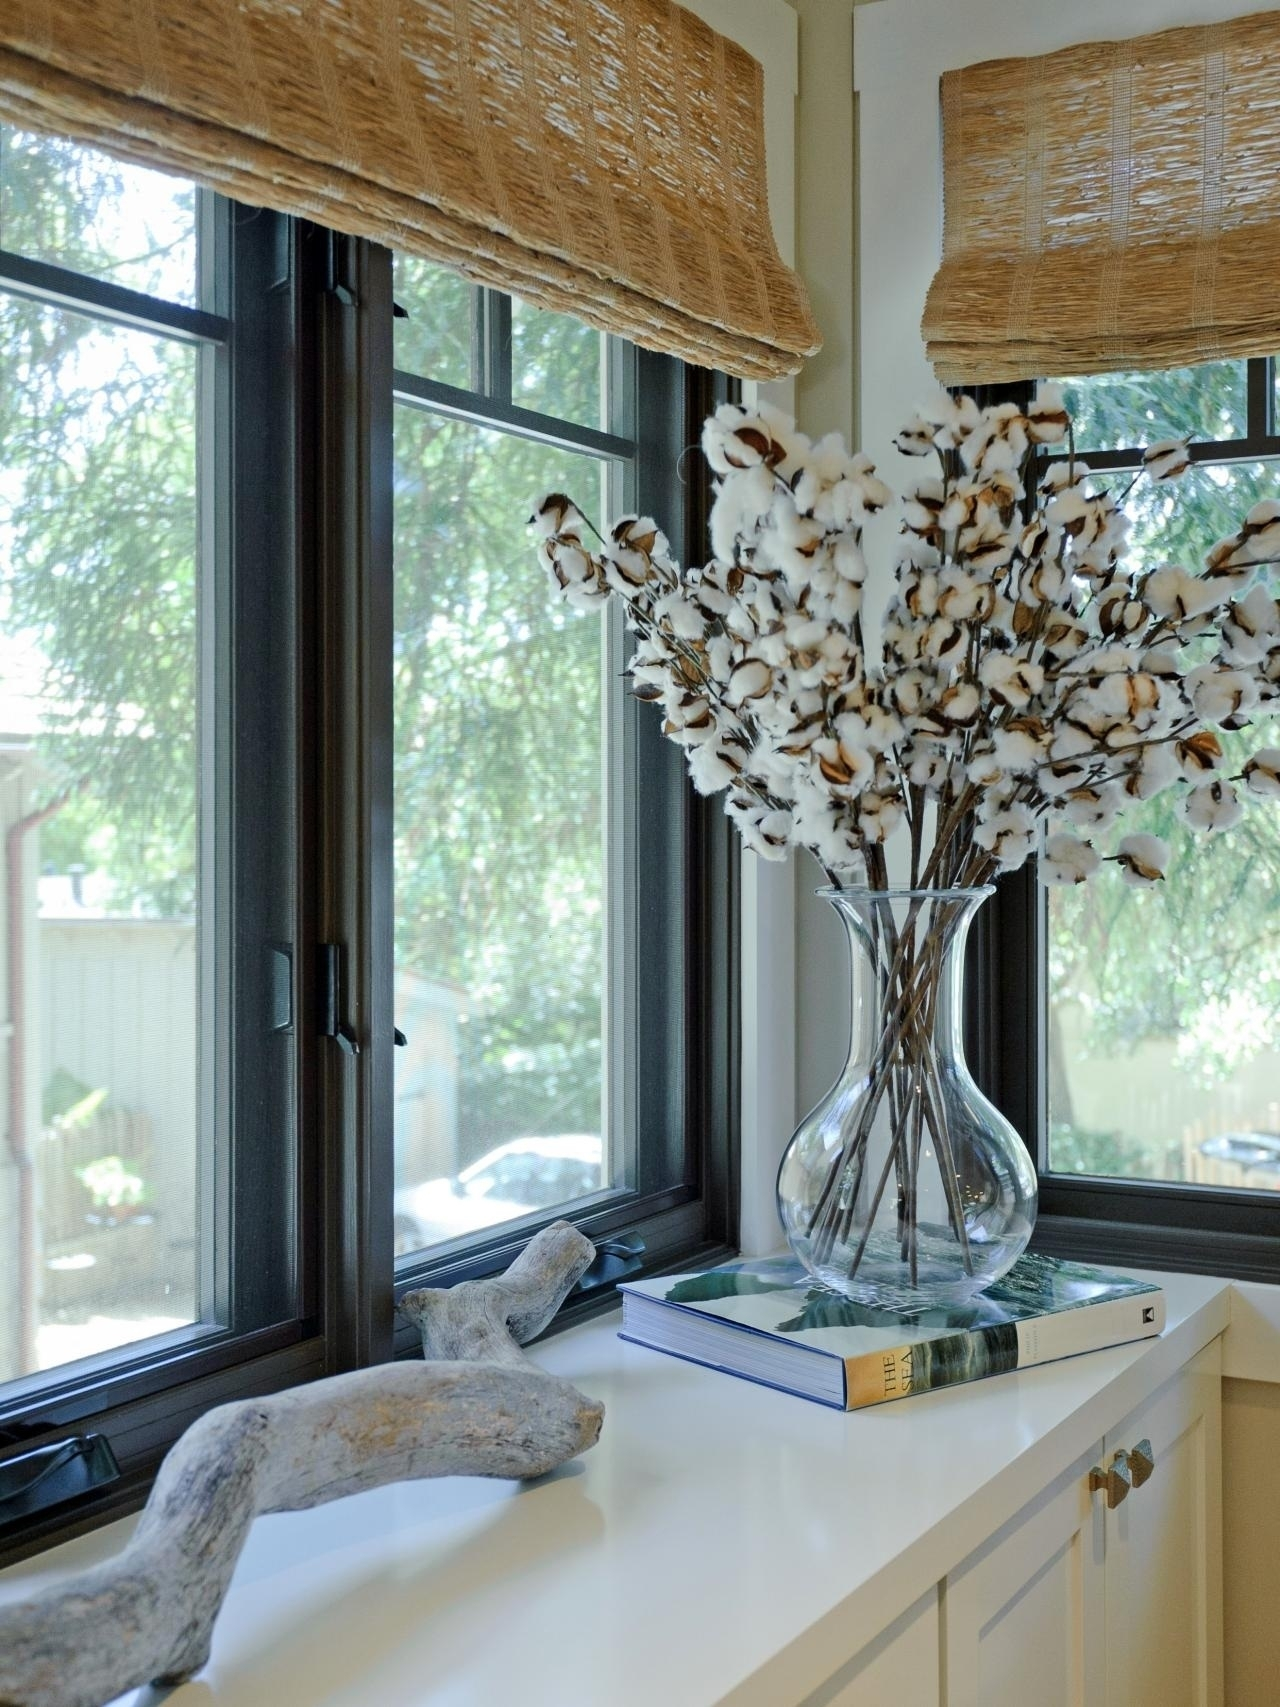 10 Famous Curtain Ideas For Large Windows %name 2020